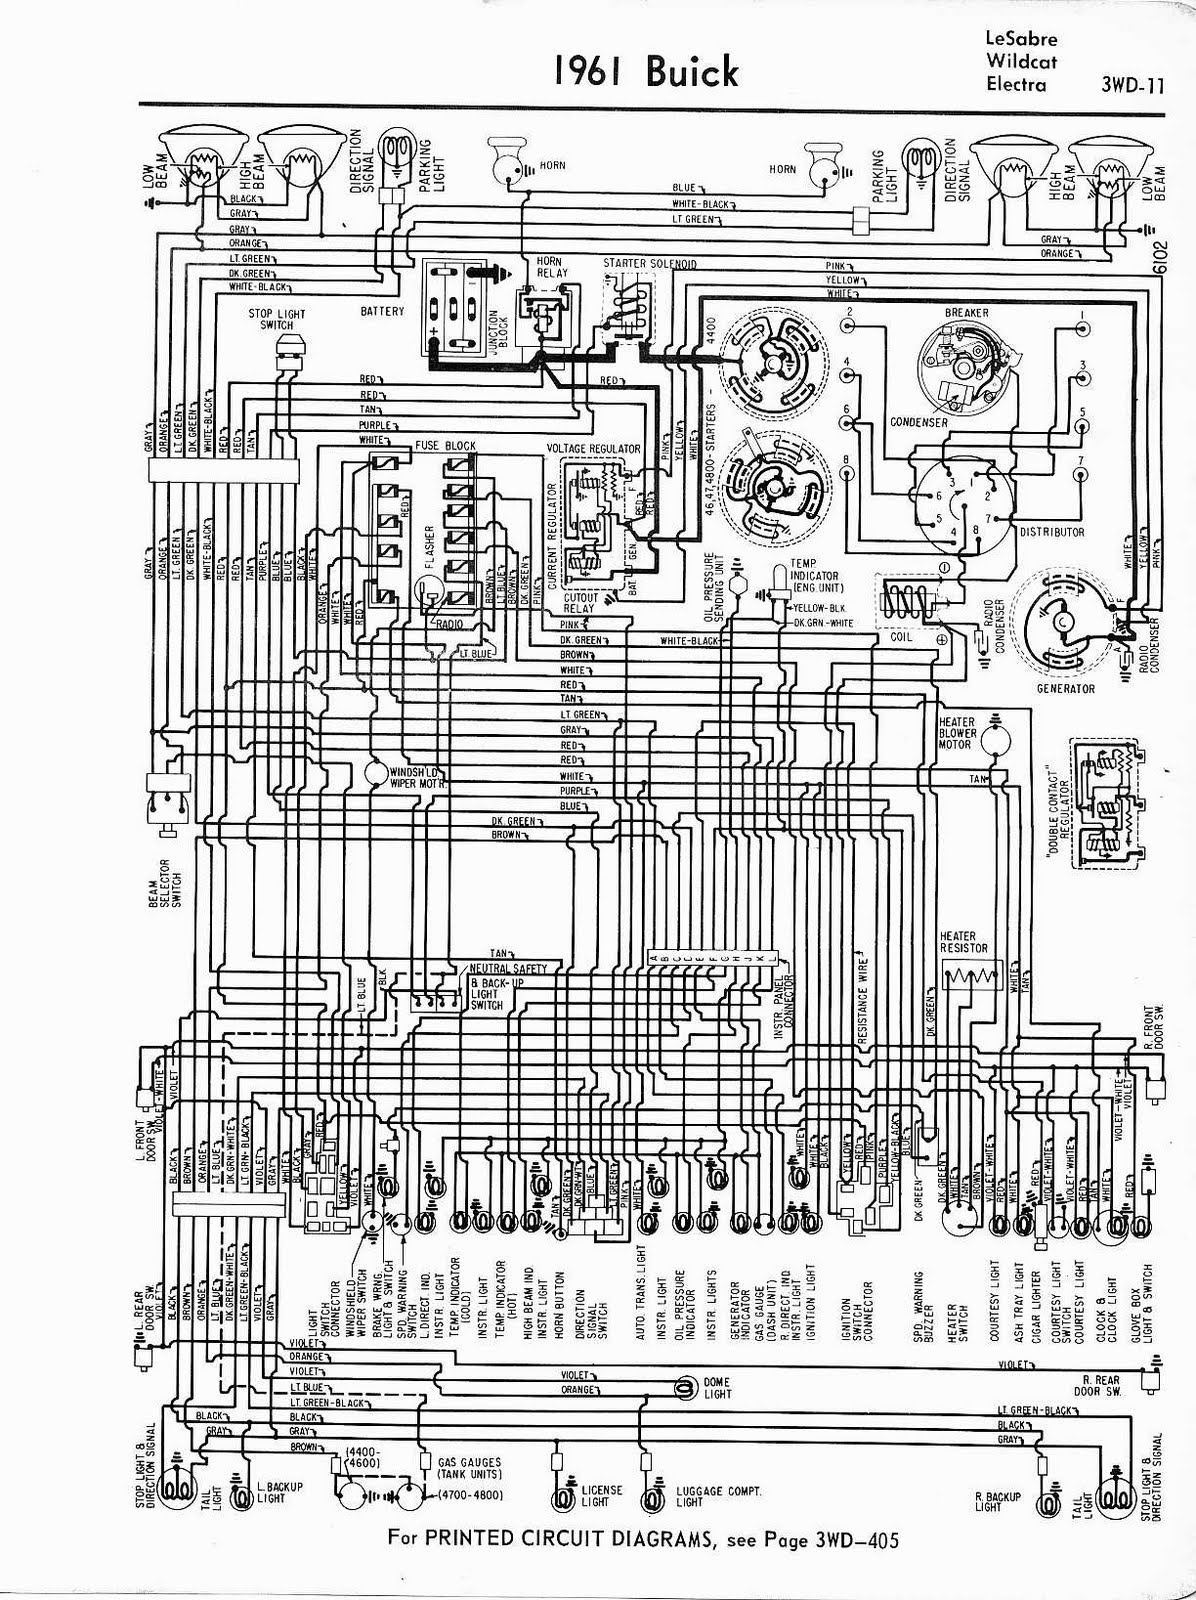 diagram] 2002 buick lesabre engine diagram full version hd quality engine  diagram - nationaldeadbeatdatabase.praga-haiti.fr  praga-haiti